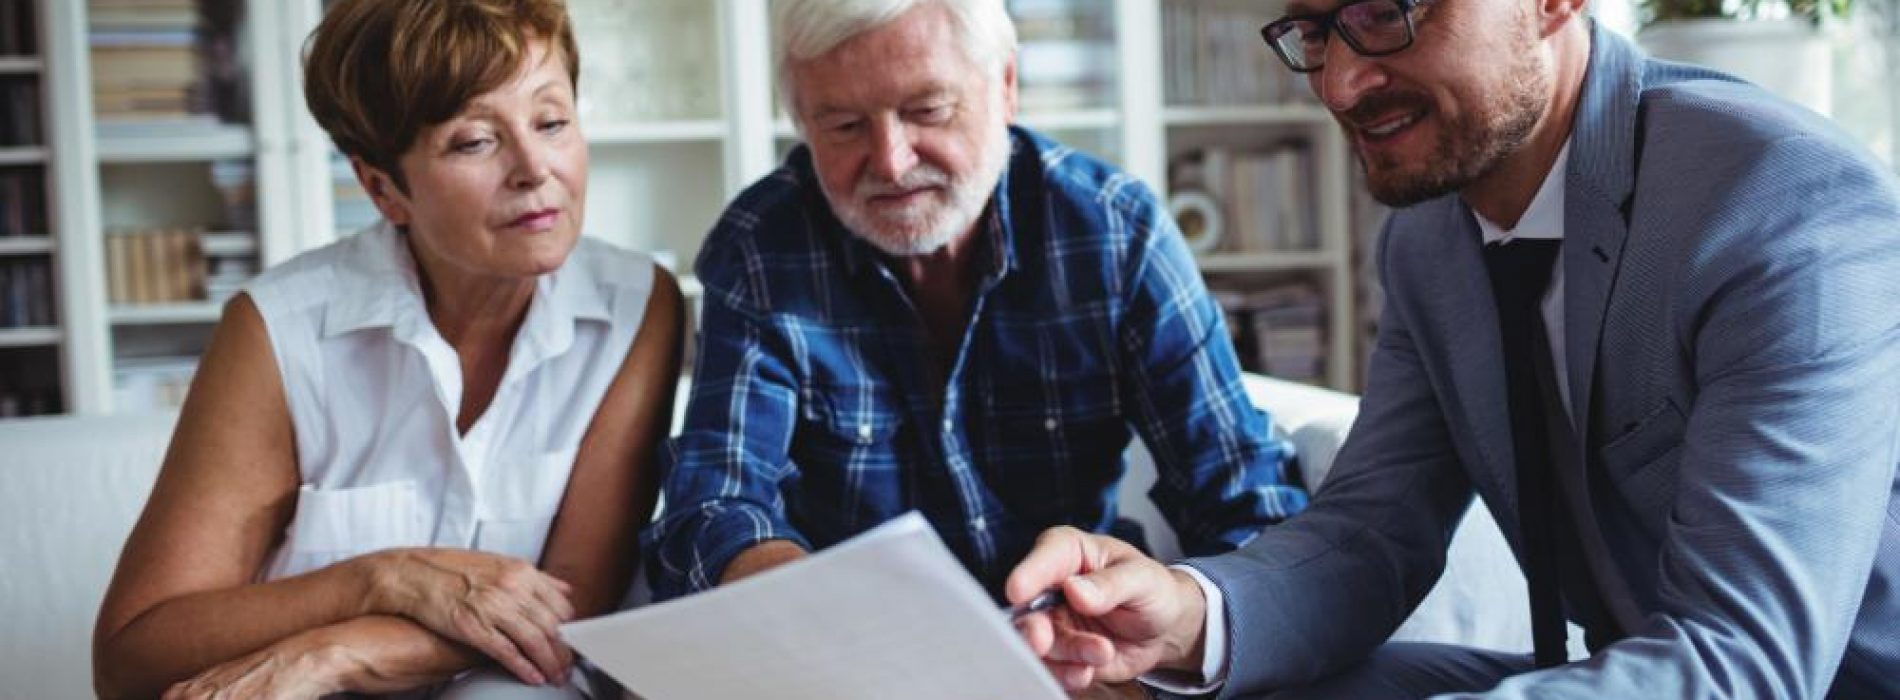 Planning for Retirement—Key Considerations and Retirement Advisors